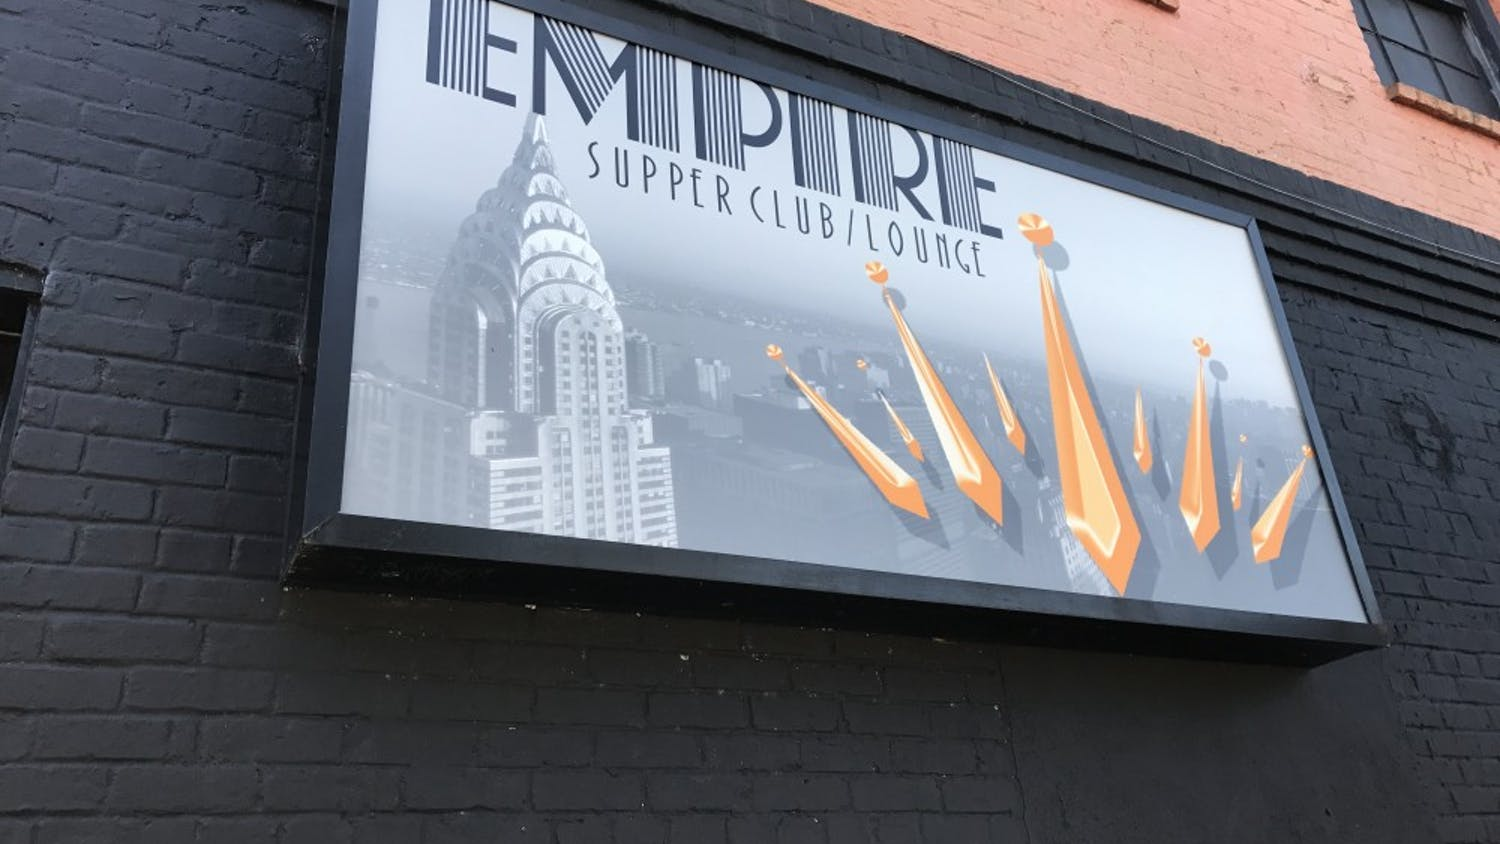 The Empire Supper Club was shut down as a public nuisance following a shooting in the early hours of Saturday morning.